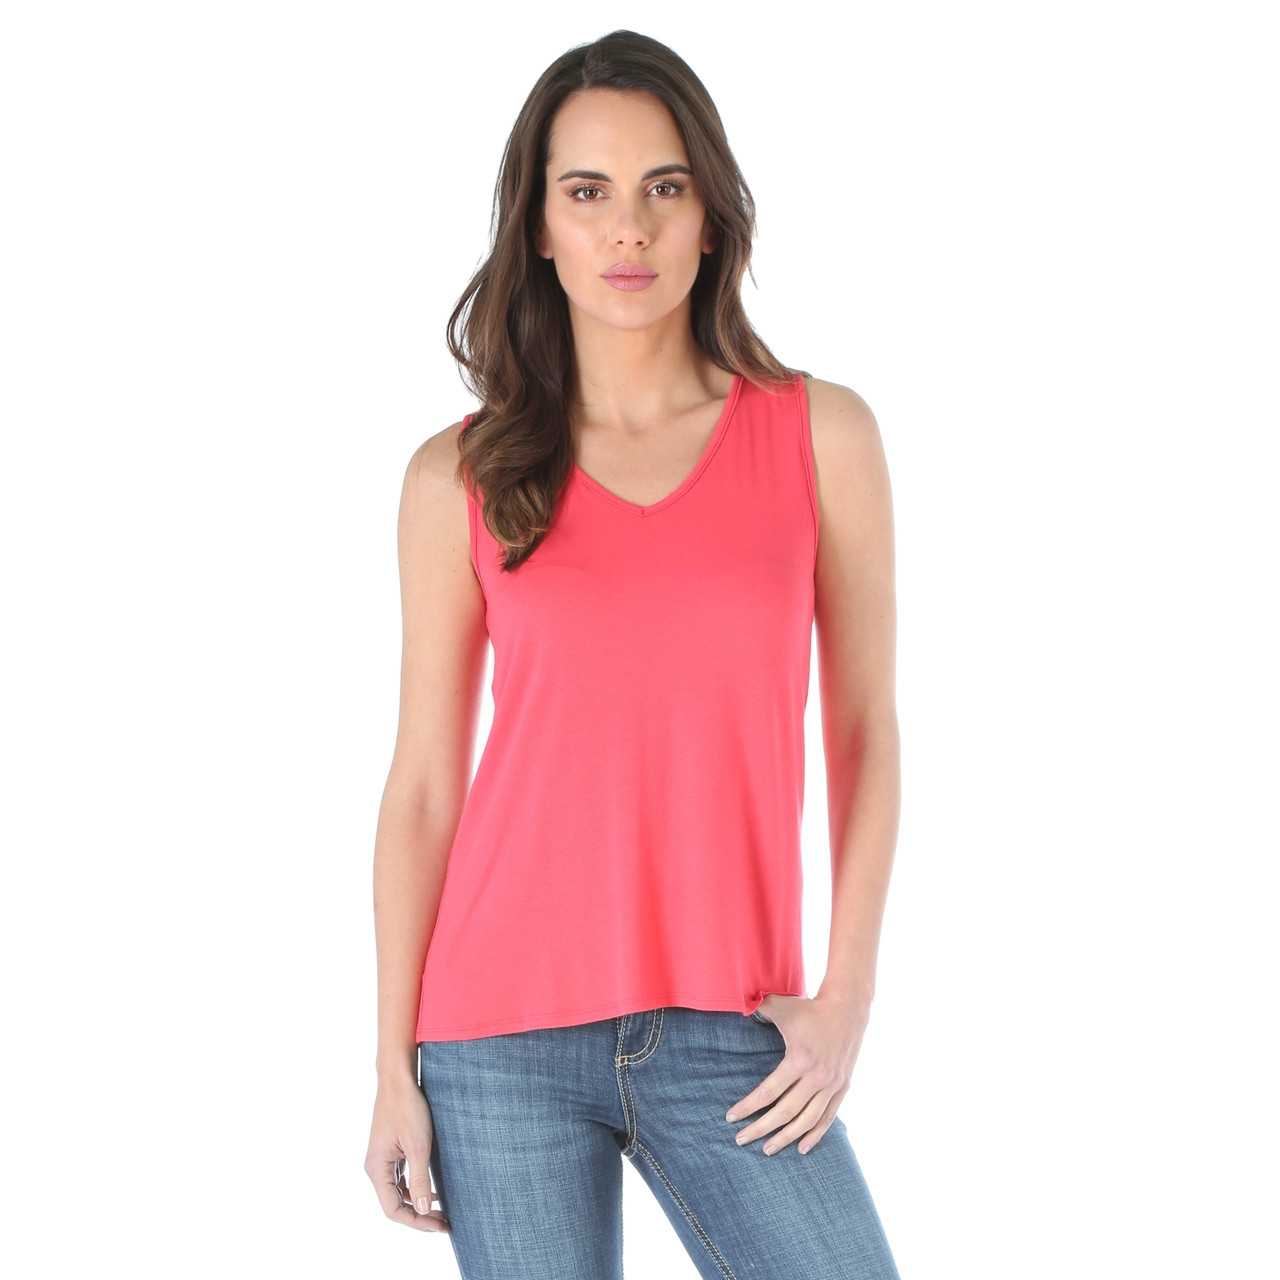 bf6053343b731 Women s Wrangler Coral Sleeveless Top - Herbert s Boots and Western Wear